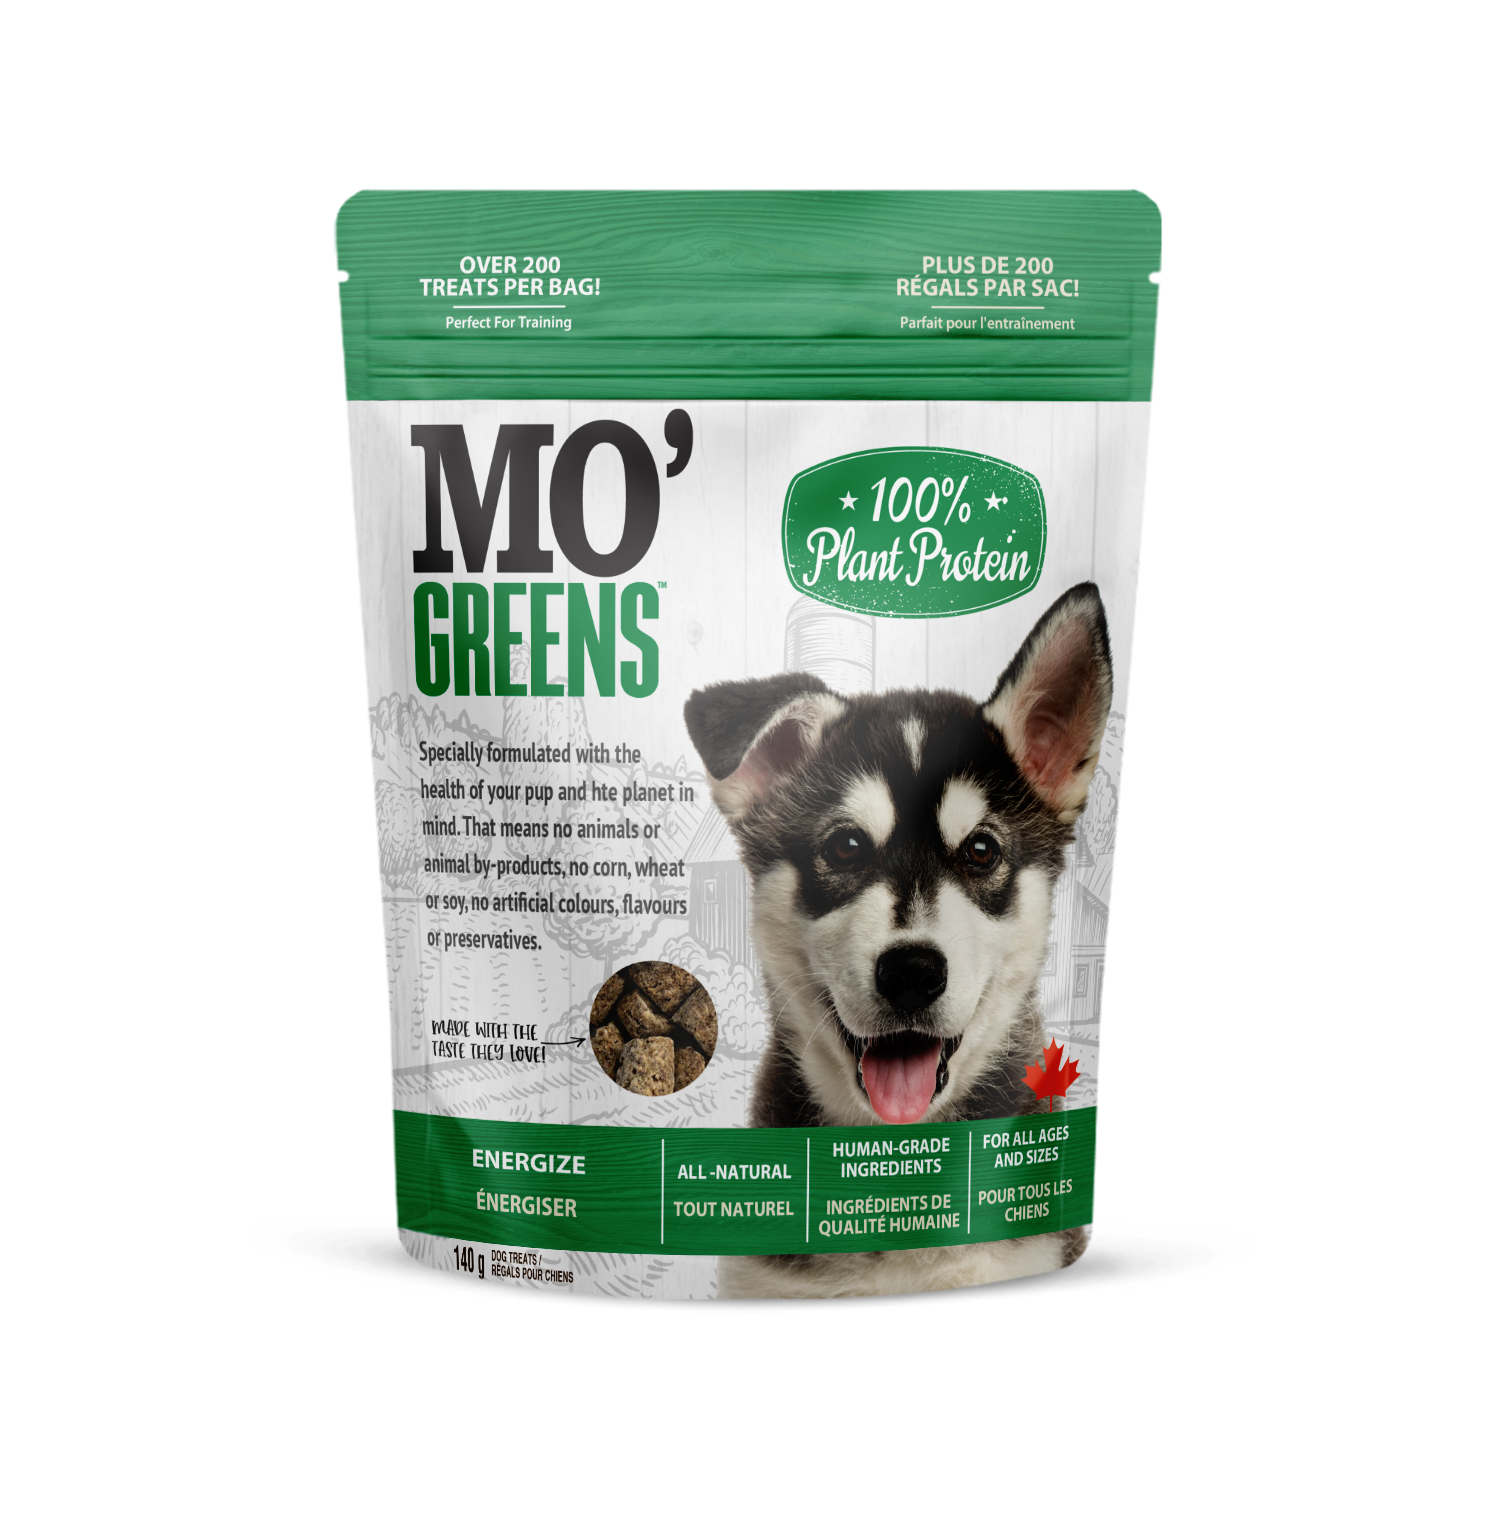 """""""Finally, a dog treat that's plant based AND has all the nutrients my dog needs! Plus the small size is perfect for training!"""""""